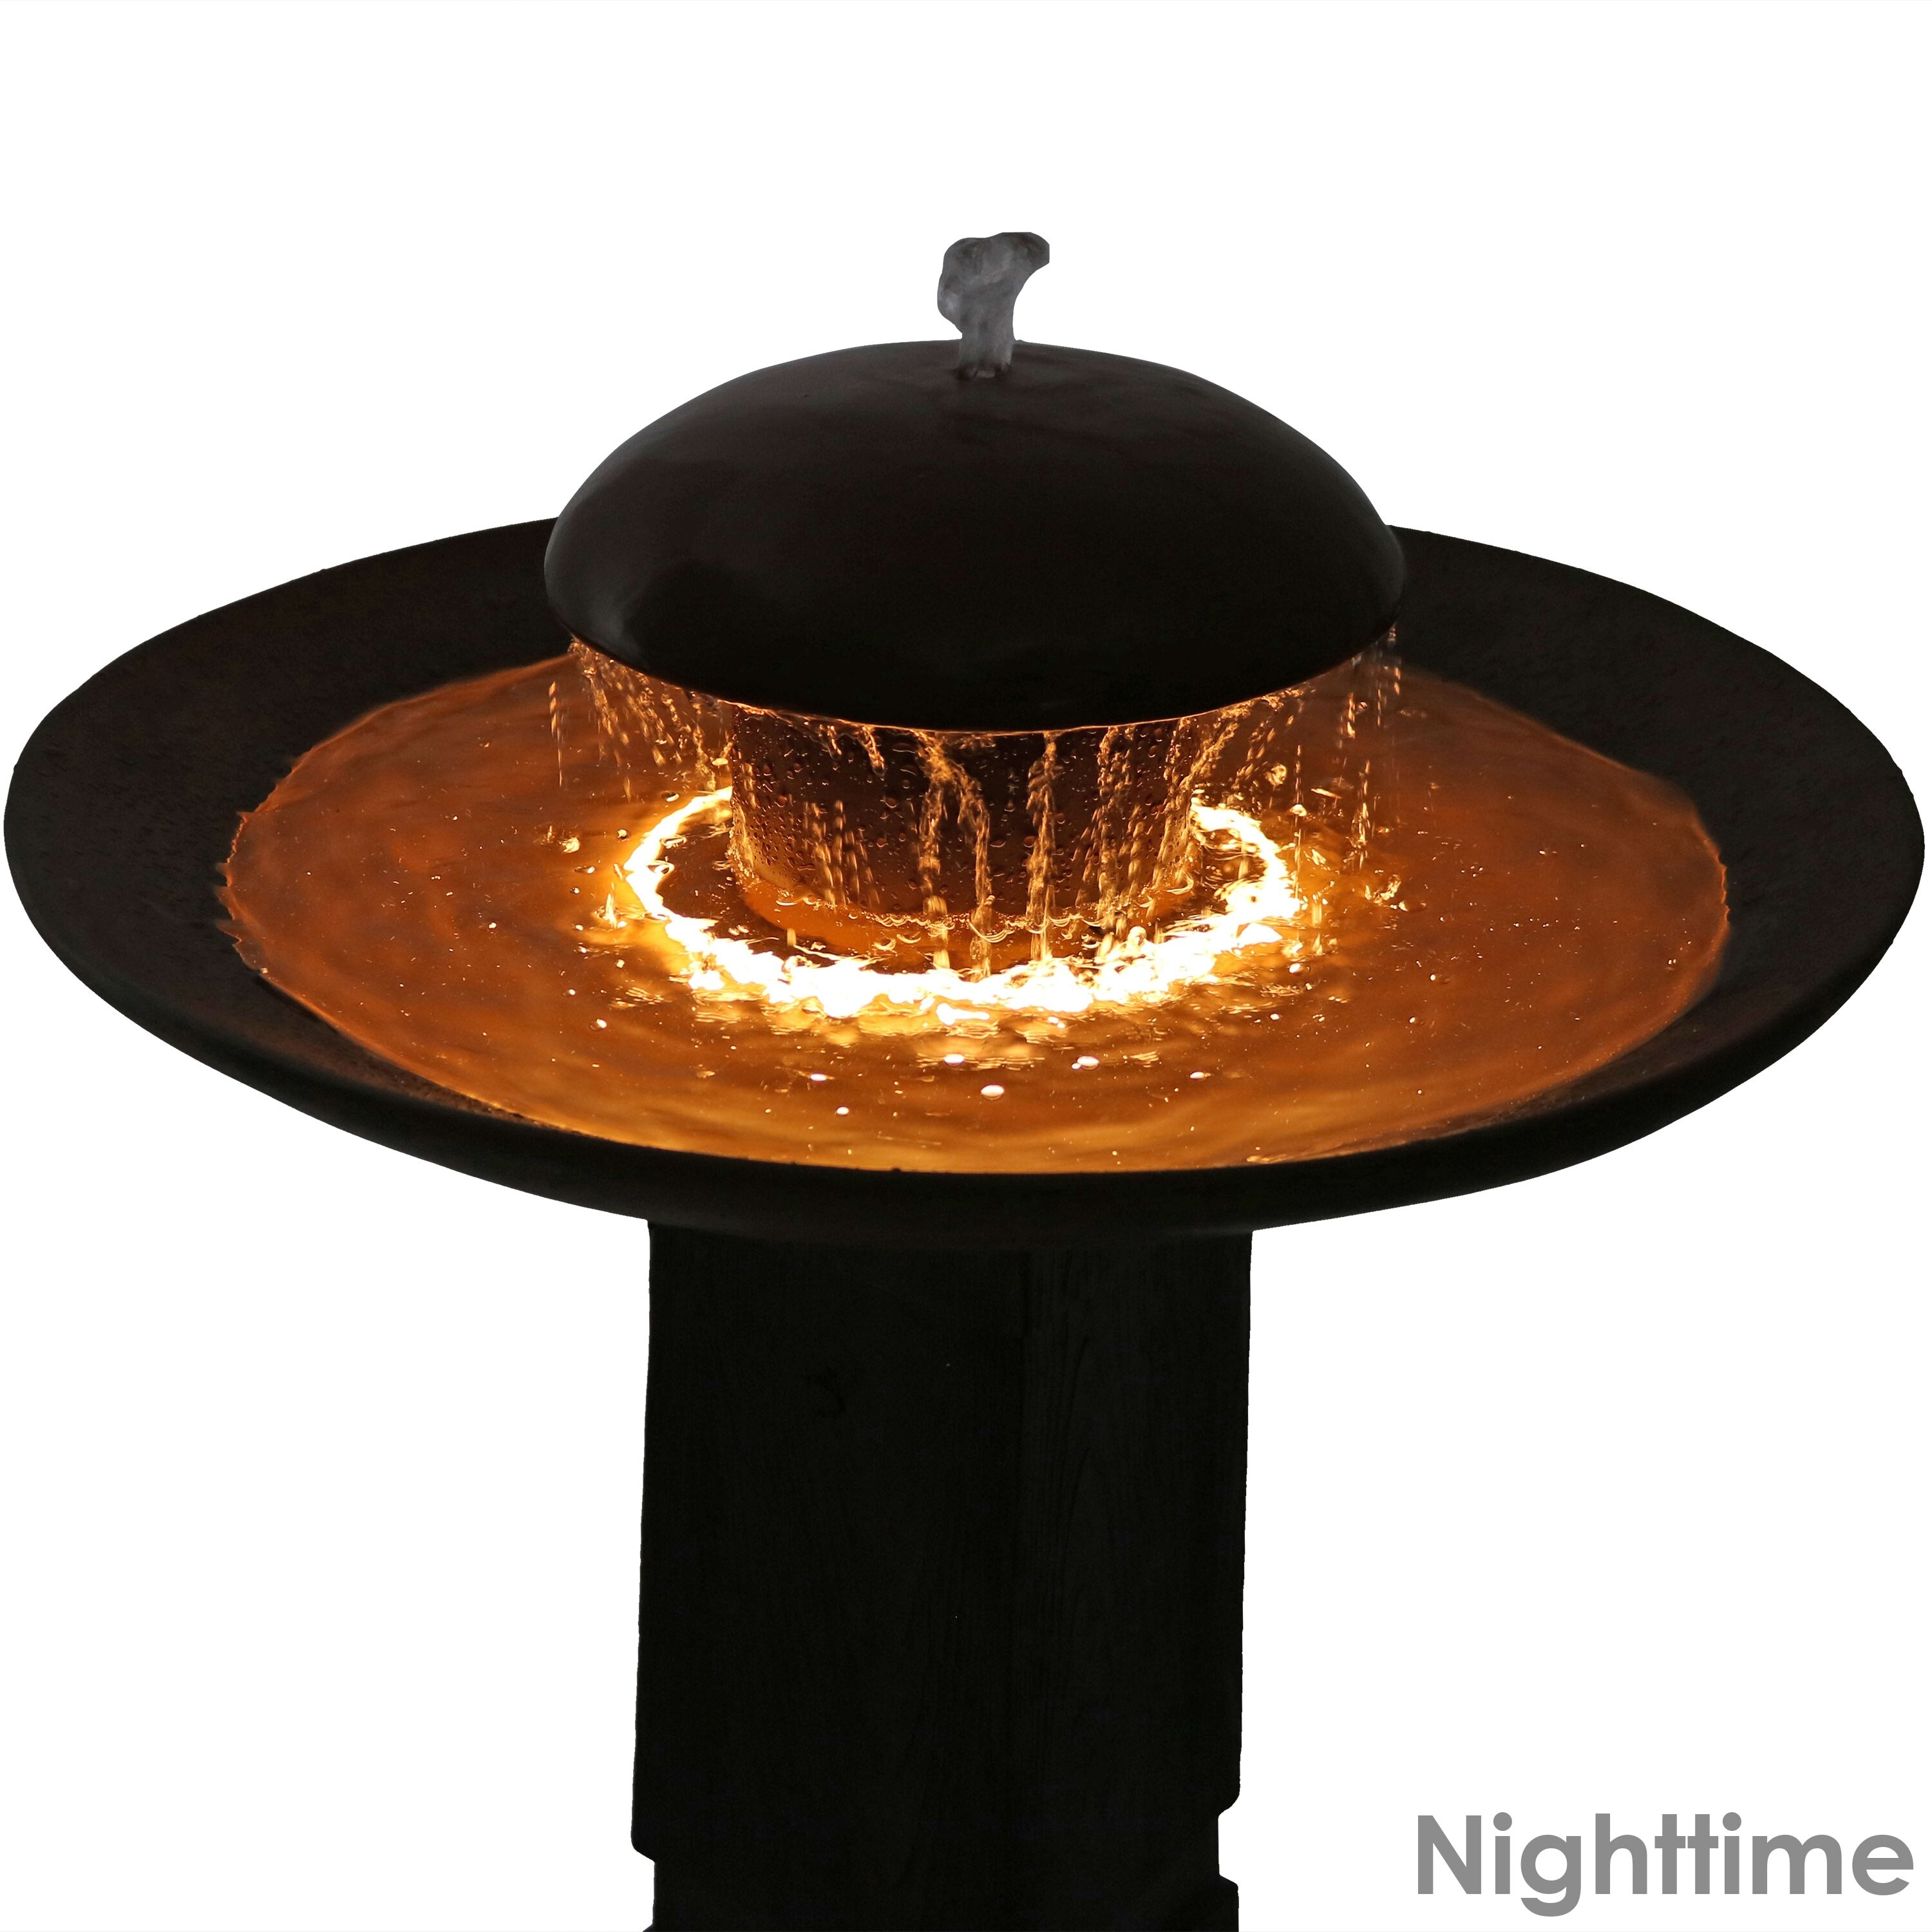 Shop Sunnydaze Domed Shower Outdoor Birdbath Water Fountain with LED on bar signs, bar pendants, bar neon, bar cabinet lighting, bar accessories, bar lamps, bar chandeliers, bar lighting fixtures, bar granite countertops,